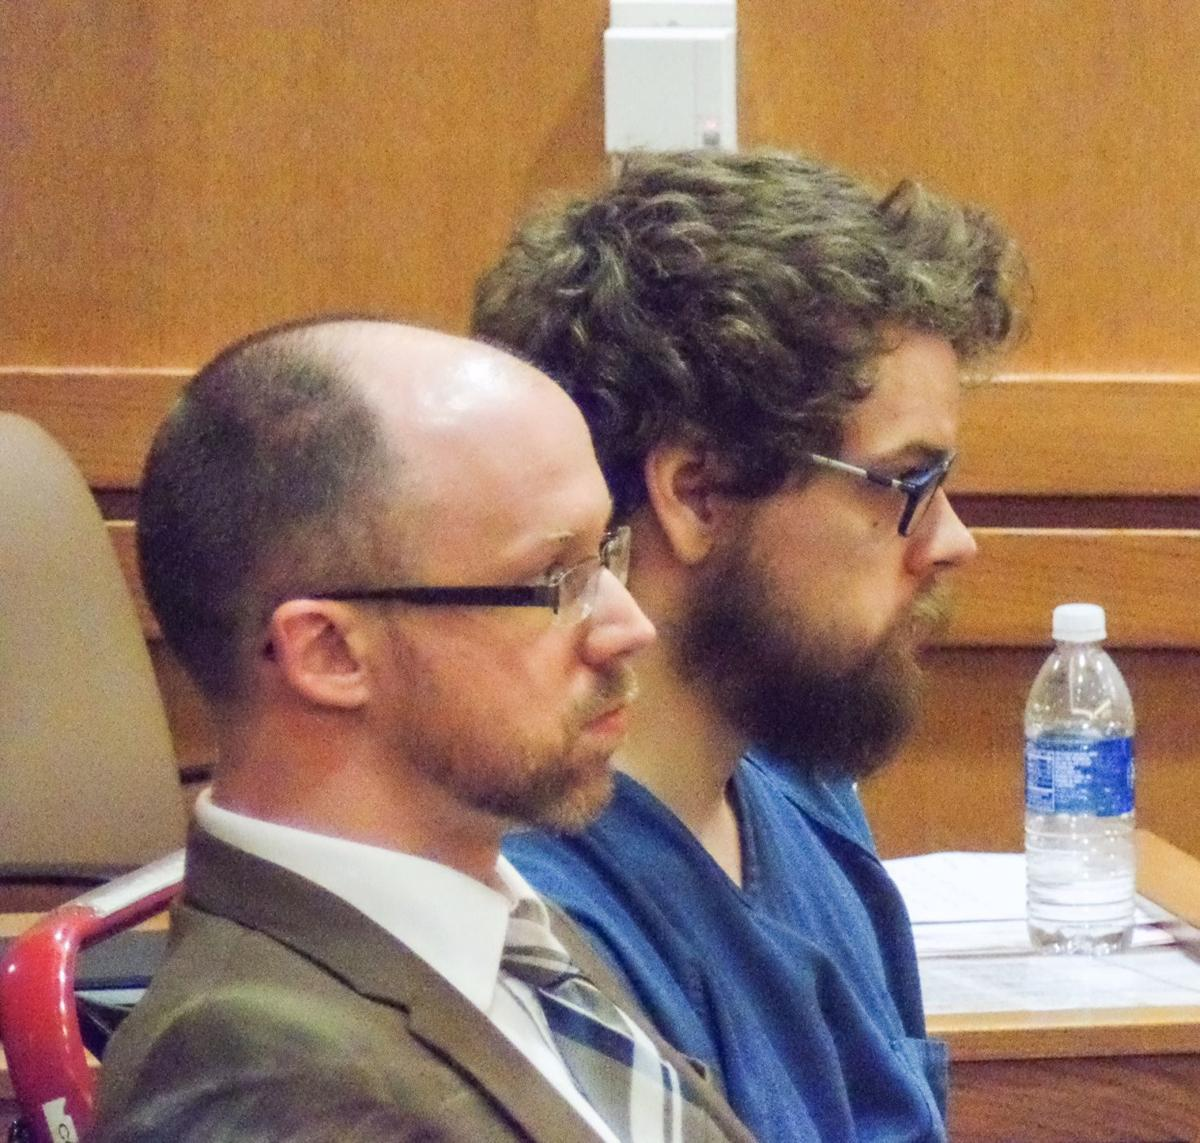 O'Kroley in court with lawyer (copy)